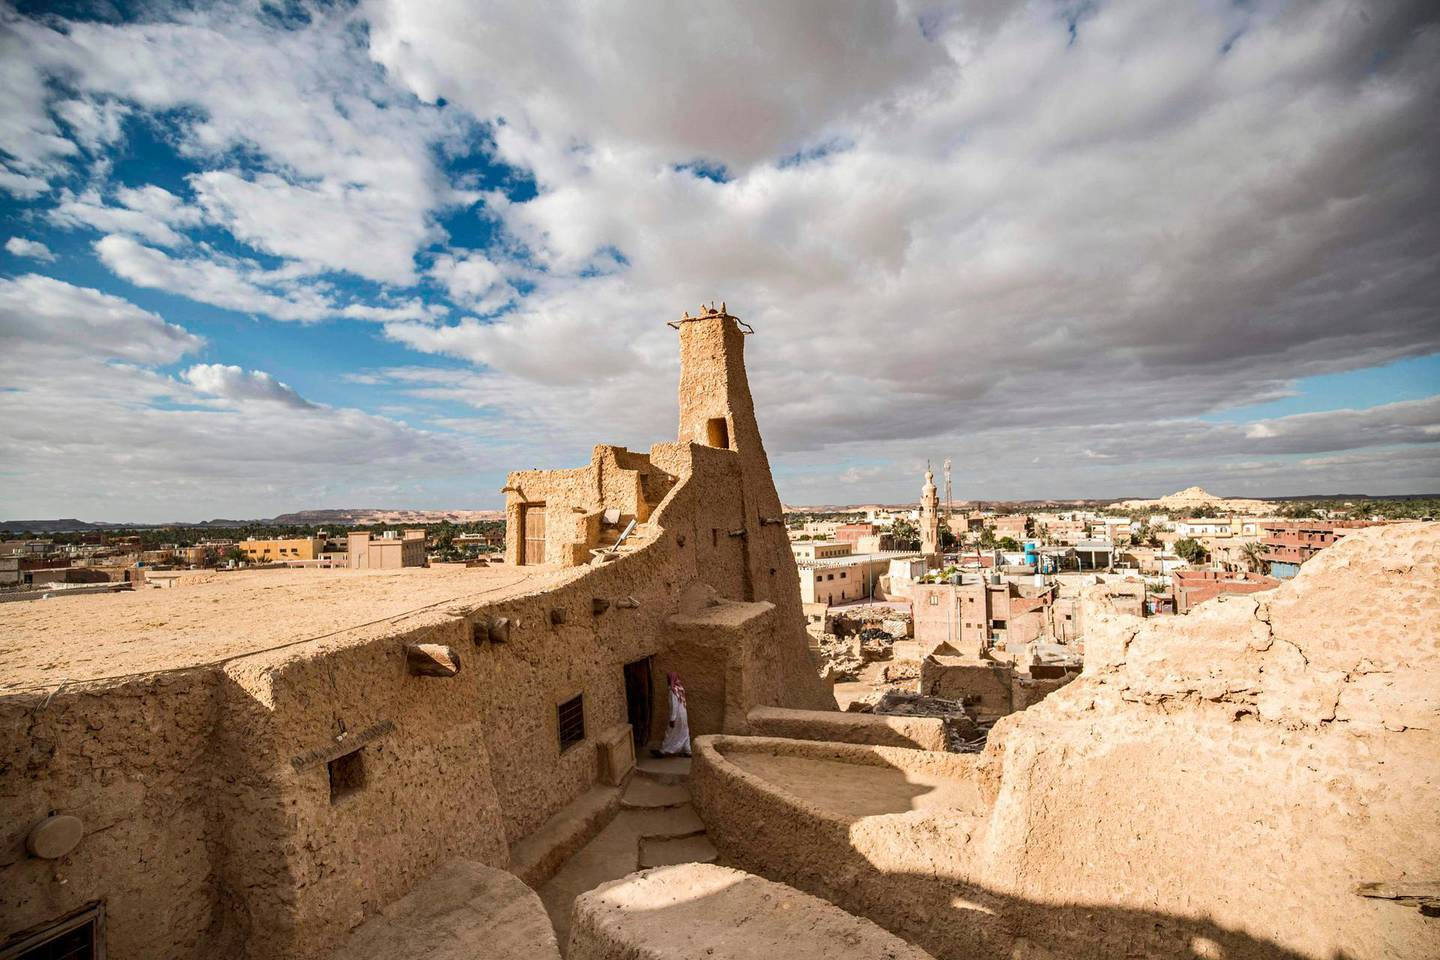 """This picture shows a view of the recently restored fortress of Shali and its surroundings, in the Egyptian desert oasis of Siwa, some 600 kms southwest of the capital Cairo, on November 6, 2020.  The 13th century edifice, called Shali or """"Home"""" in the Siwi language, was built by Berber populations, using kershef, a mixture of clay, salt and rock which acts as a natural insulator in an area where the summer heat can be scorching. After it was worn away by erosion, and then torrential rains in 1926, the European Union and Egyptian company Environmental Quality International (EQI) from 2018 sought to restore the building, at a cost of over $600,000.  / AFP / Khaled DESOUKI"""